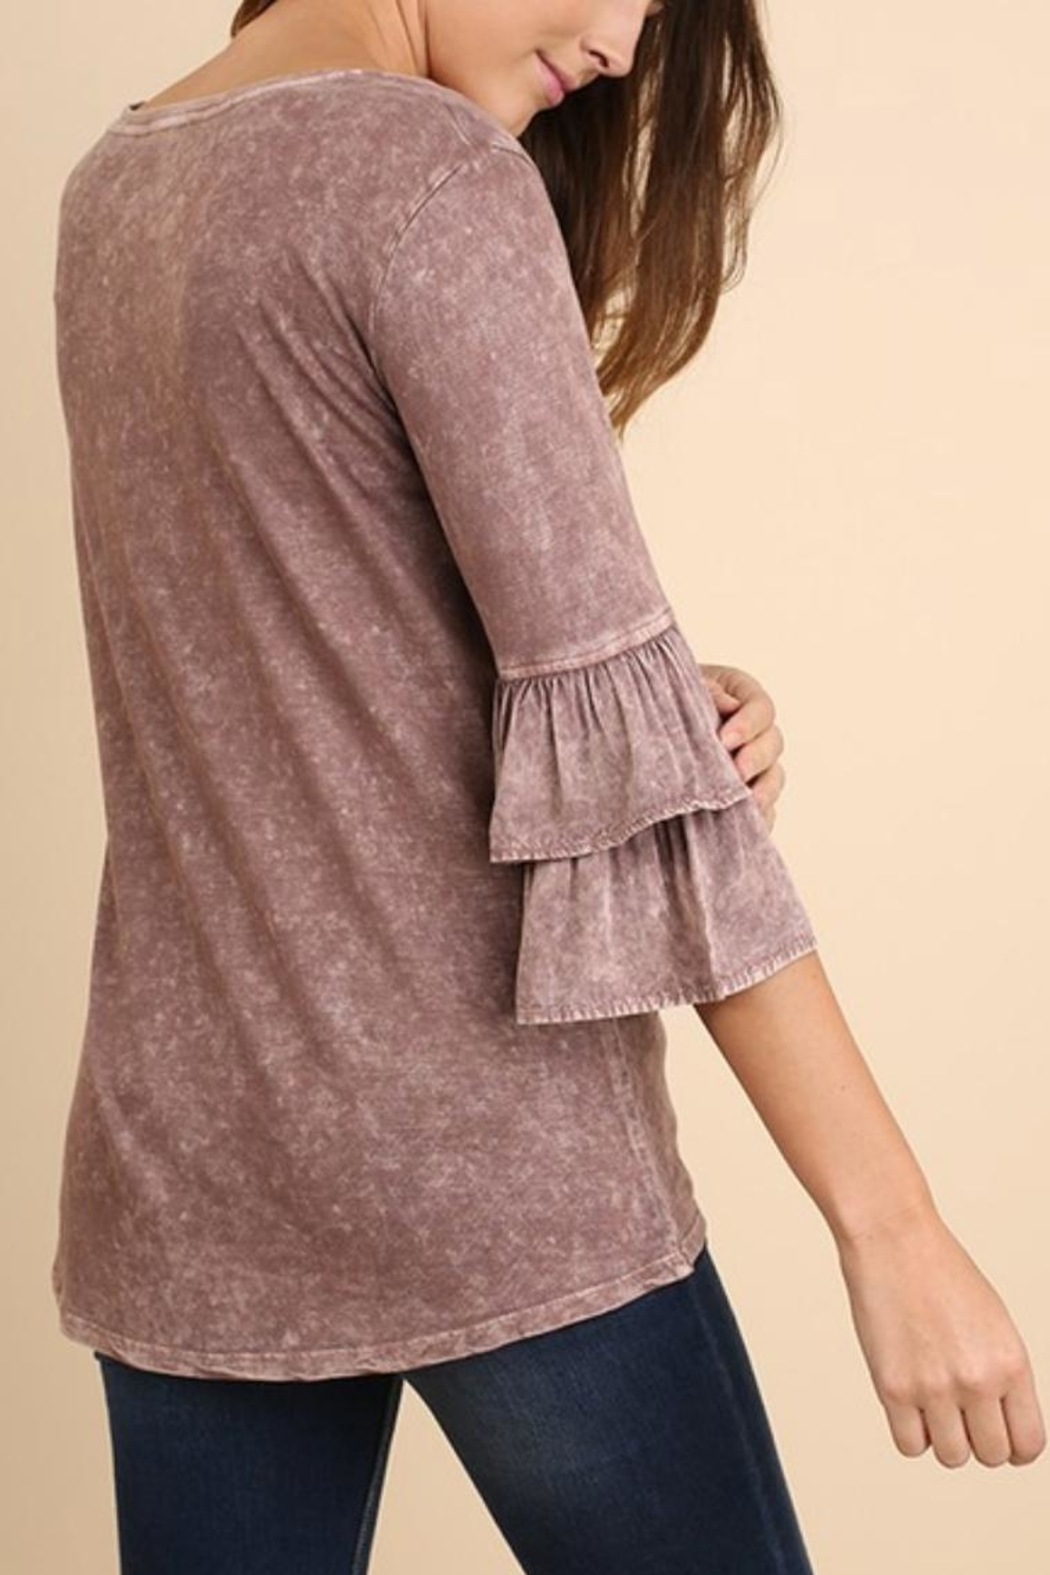 Umgee USA Mineral-Washed Ruffle-Sleeved Top - Front Full Image